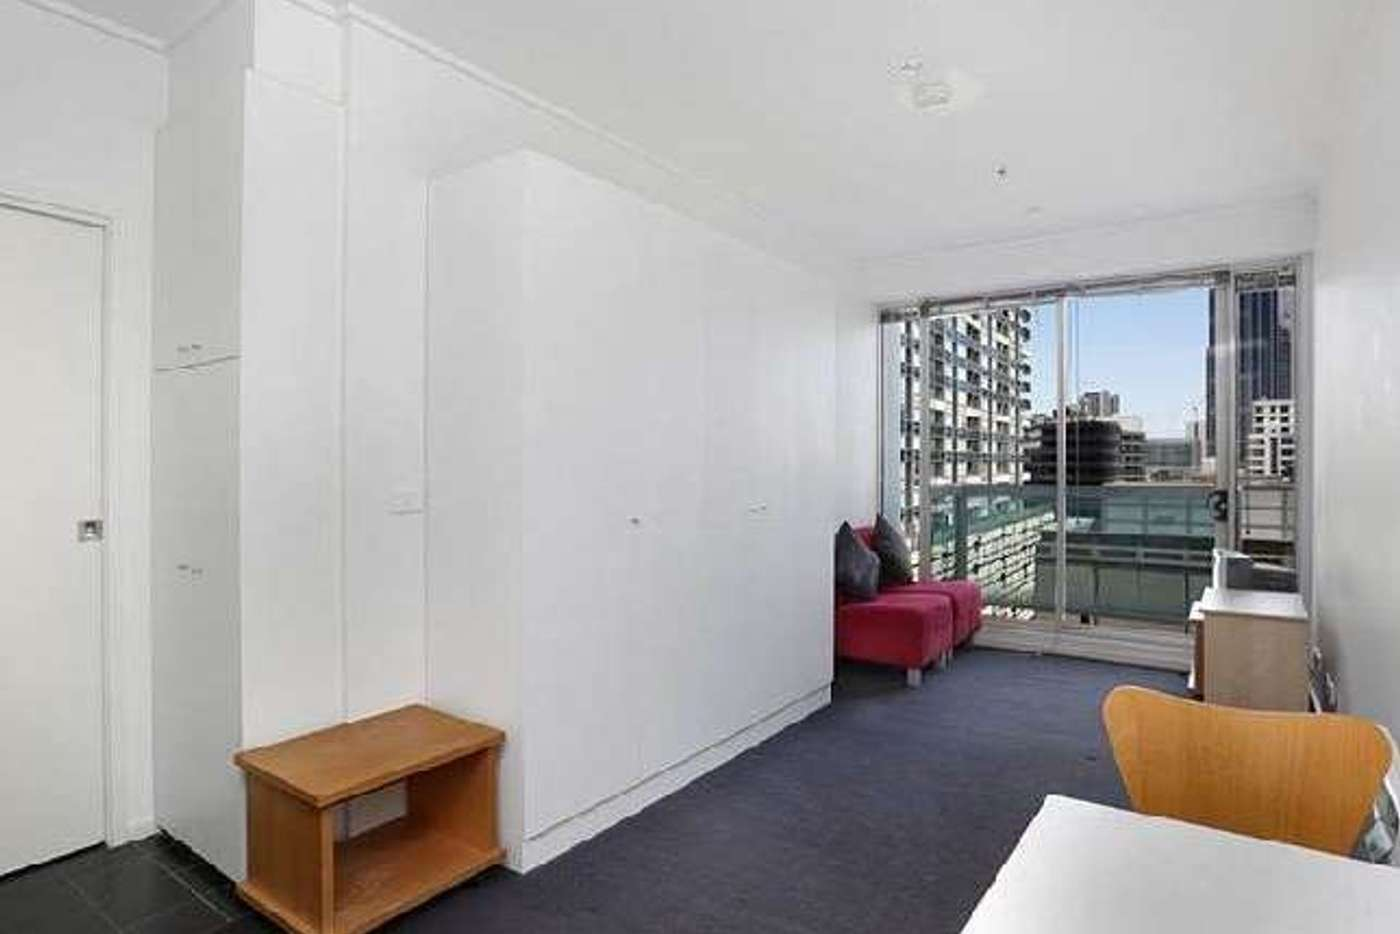 Main view of Homely apartment listing, 805/160 LITTLE LONSDALE STREET, Melbourne VIC 3000